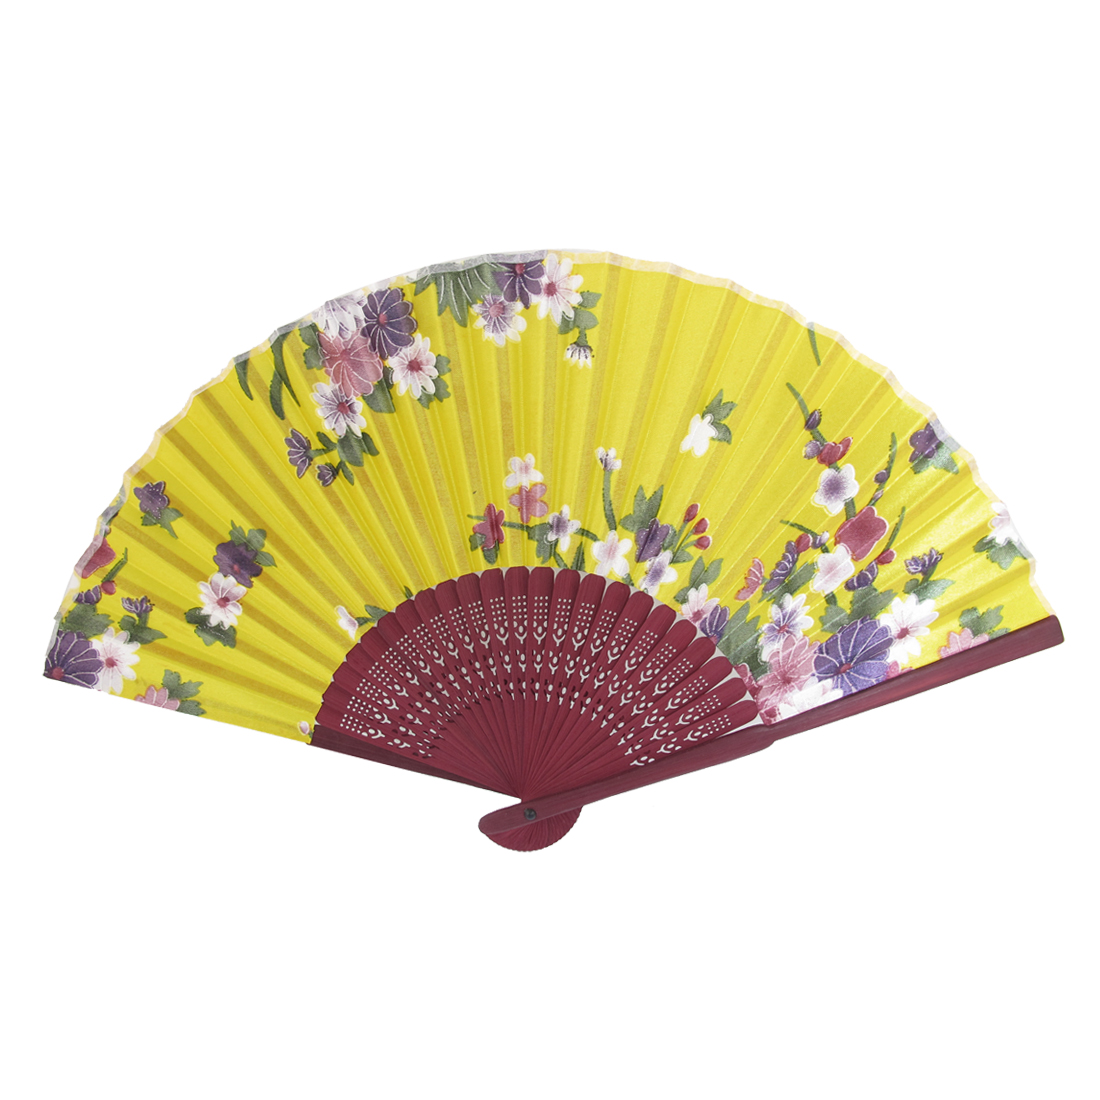 Wood Hollow Out Style Ribs Flower Pattern Fabric Foldable Hand Fan Yellow